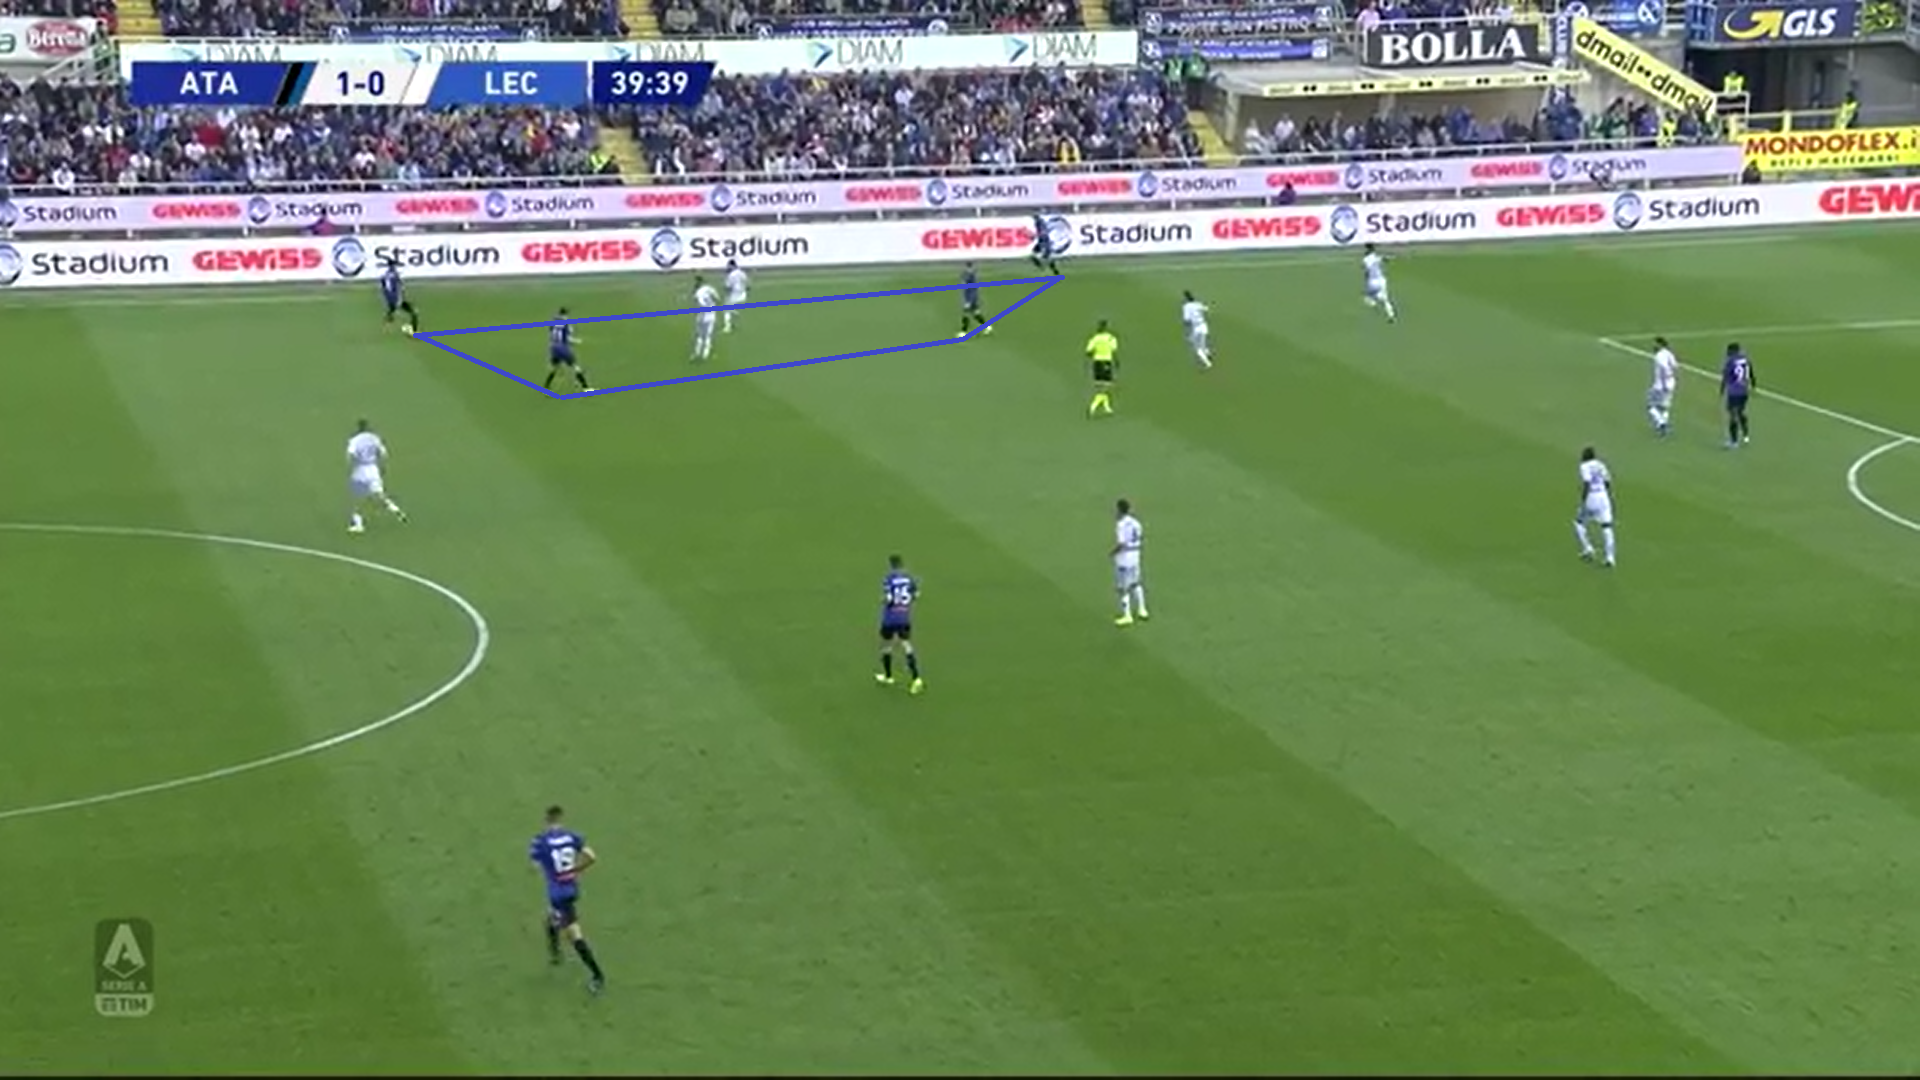 Serie A 2019/20: Atalanta vs Lecce - tactical analysis tactics